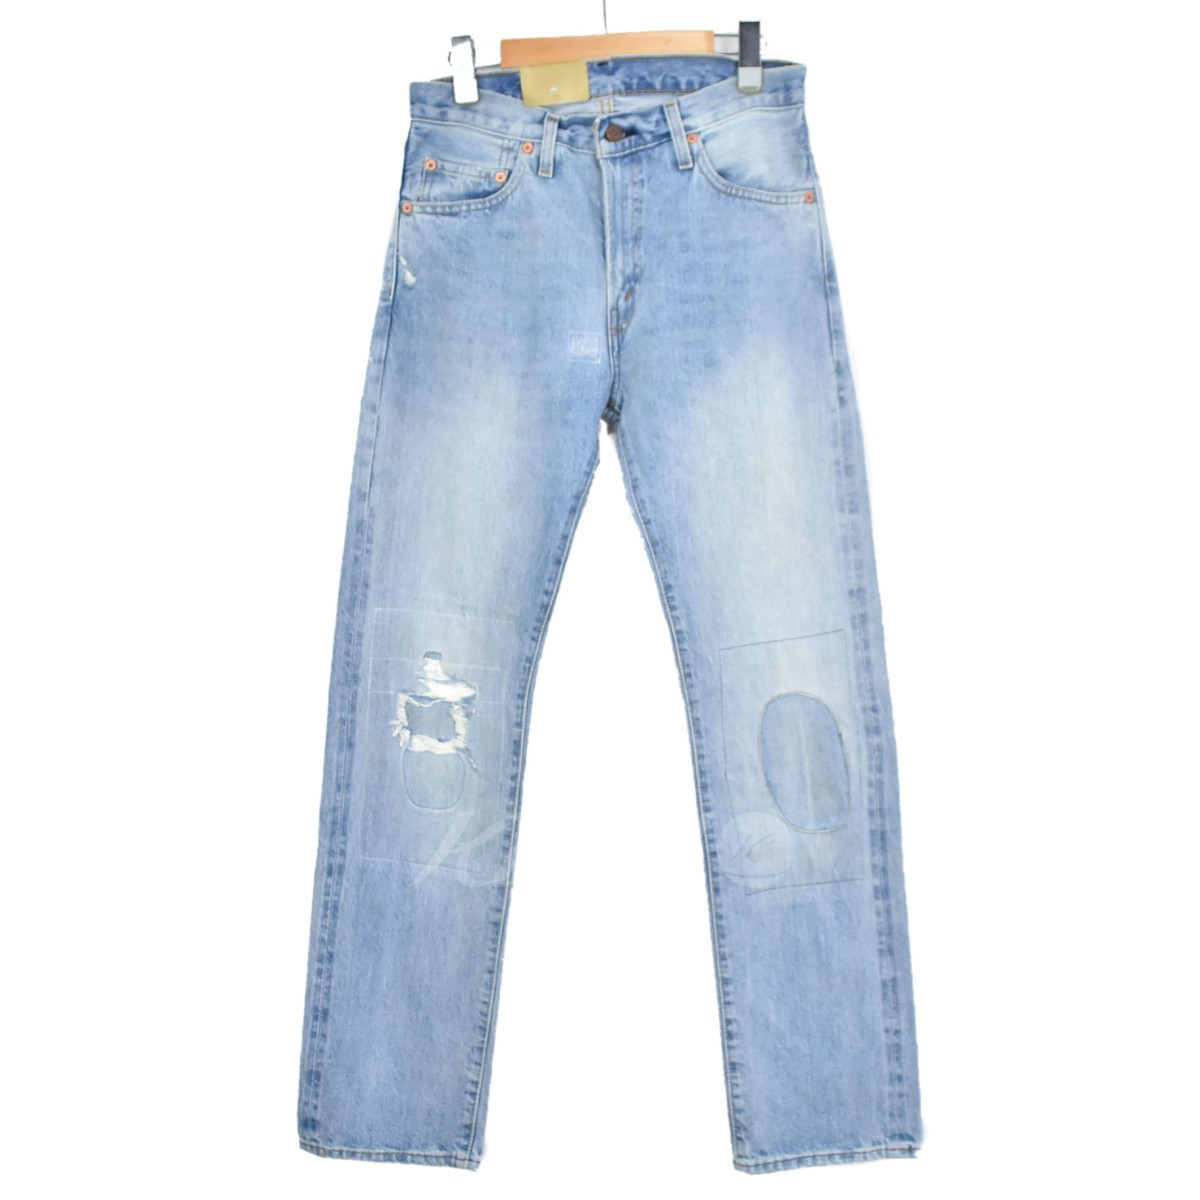 【中古】Levi's Vintage Clothing Lot.67505-0111 デニム パンツ 【送料無料】 【295416】 【KIND1551】